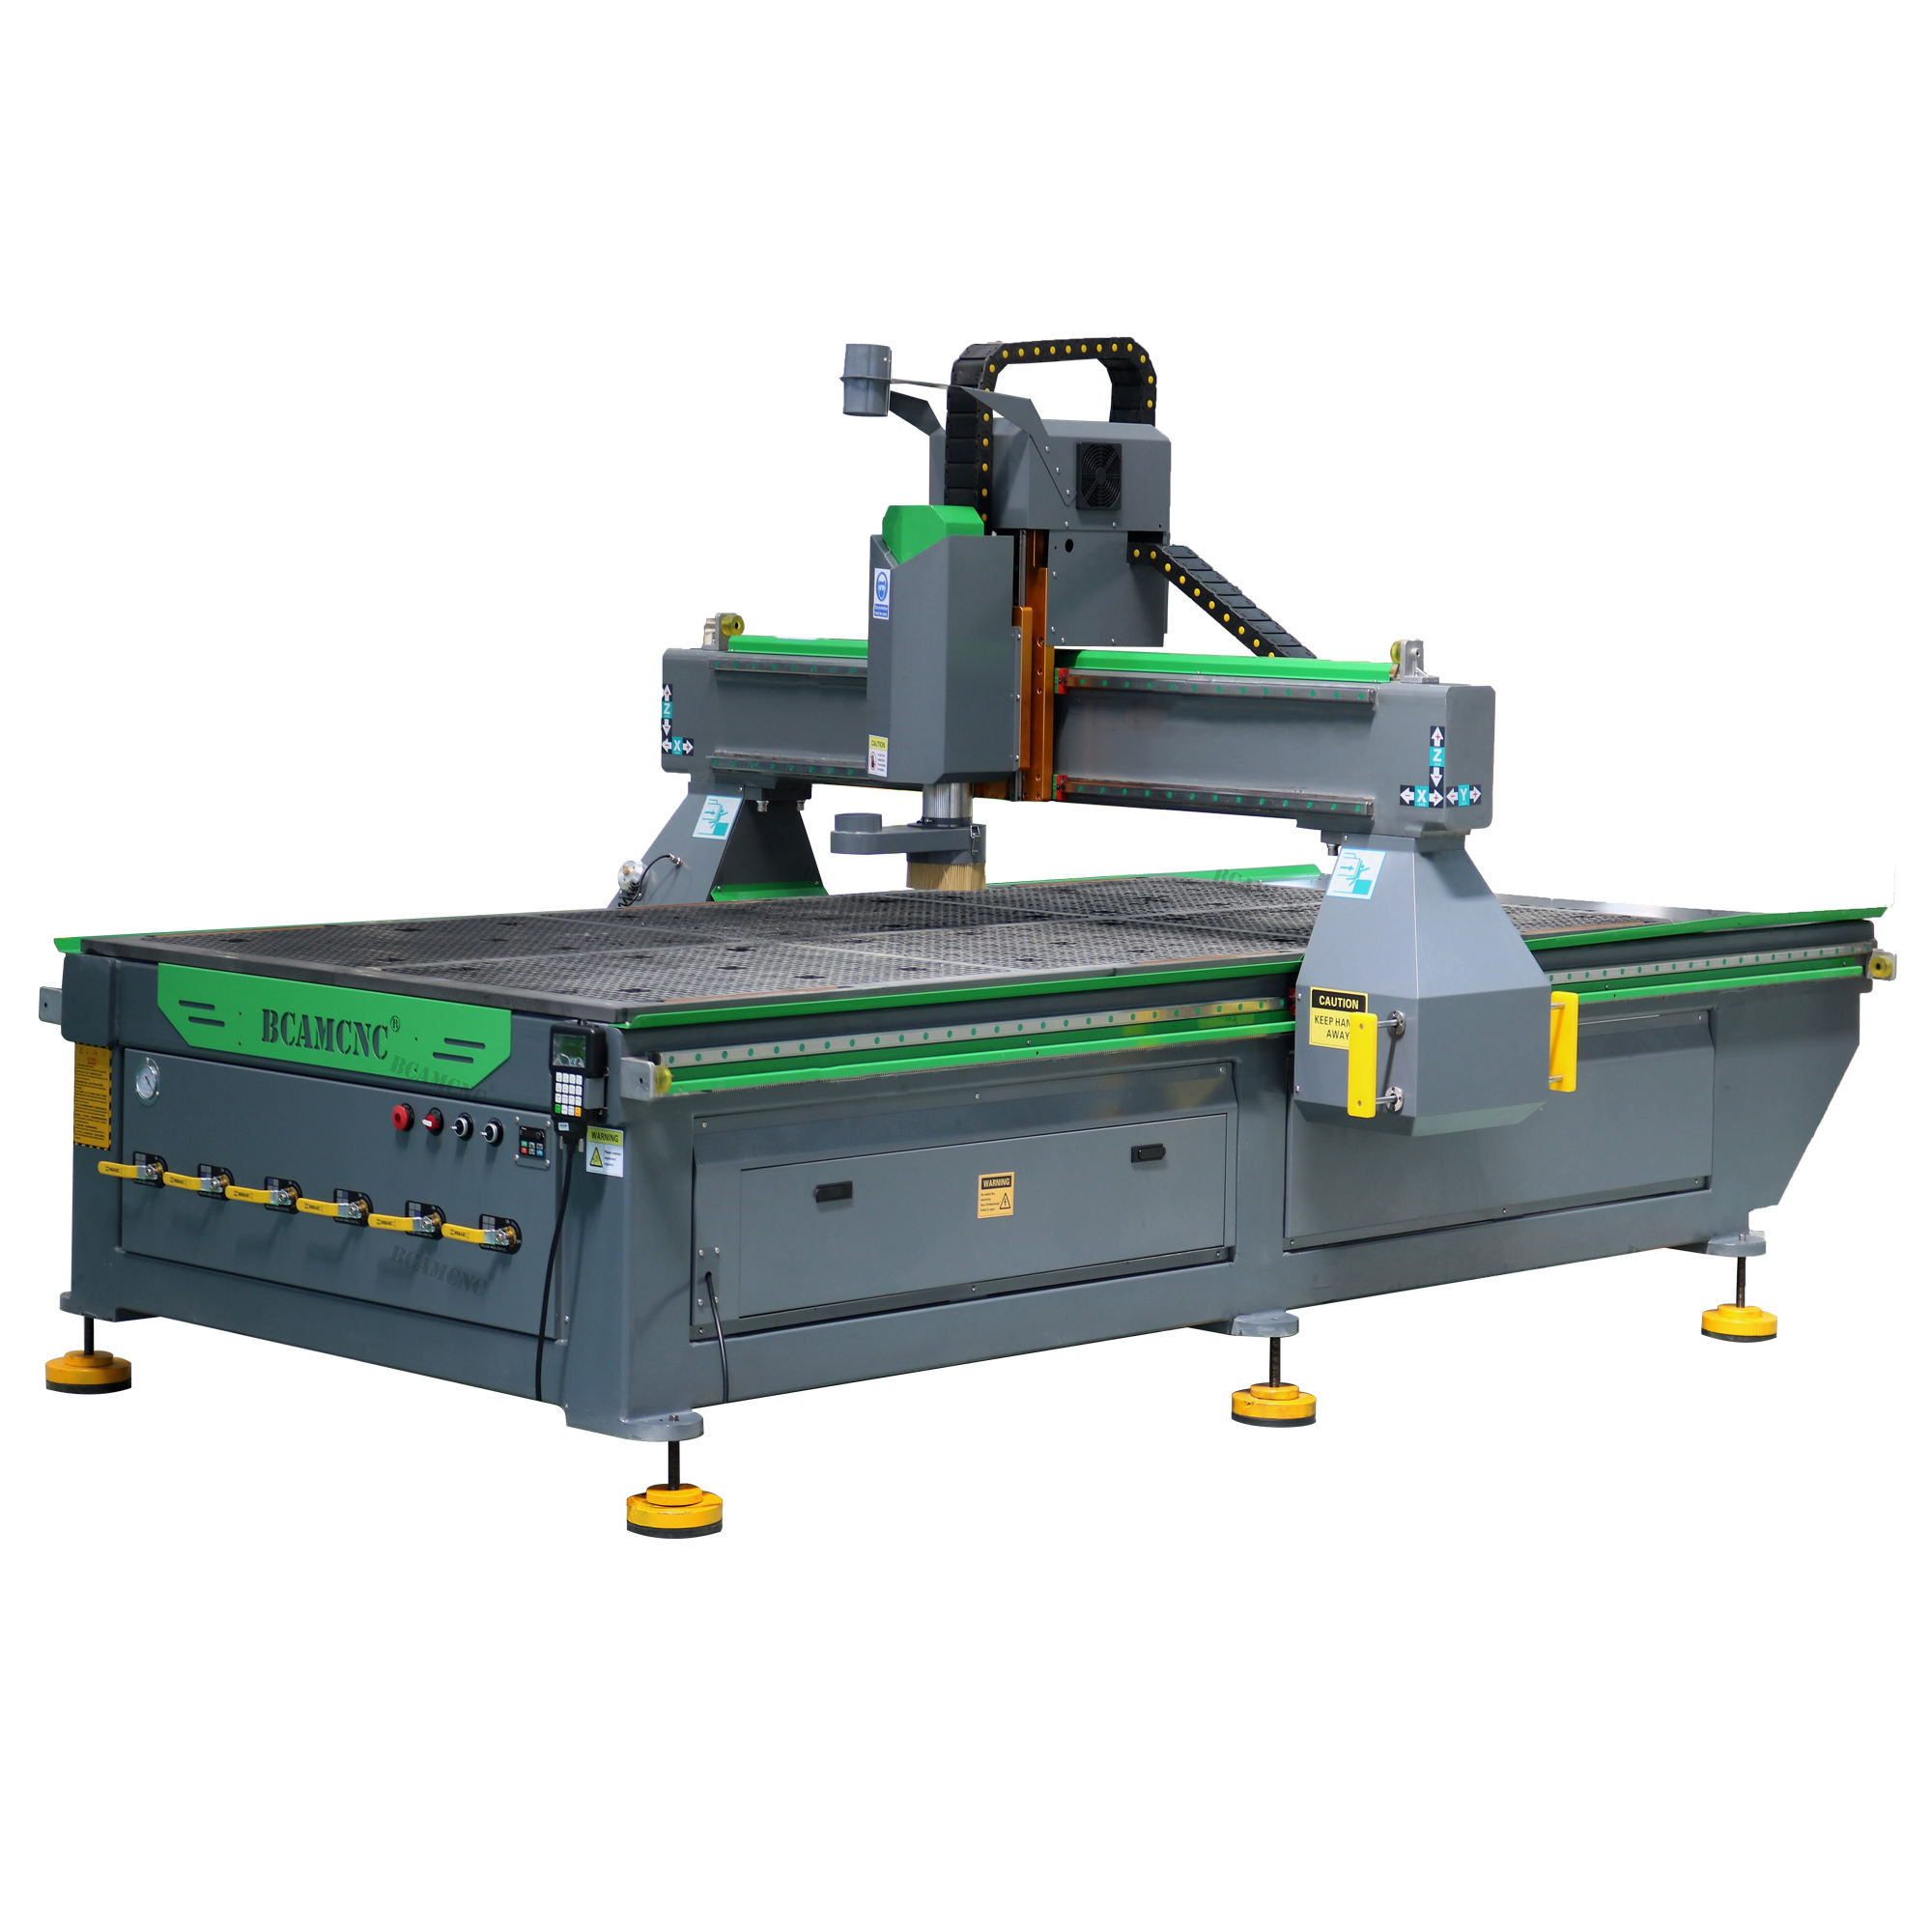 Professional manufacture CNC Router BCM1325s 3d woodworking engraving machine for Wood MDF Aluminum